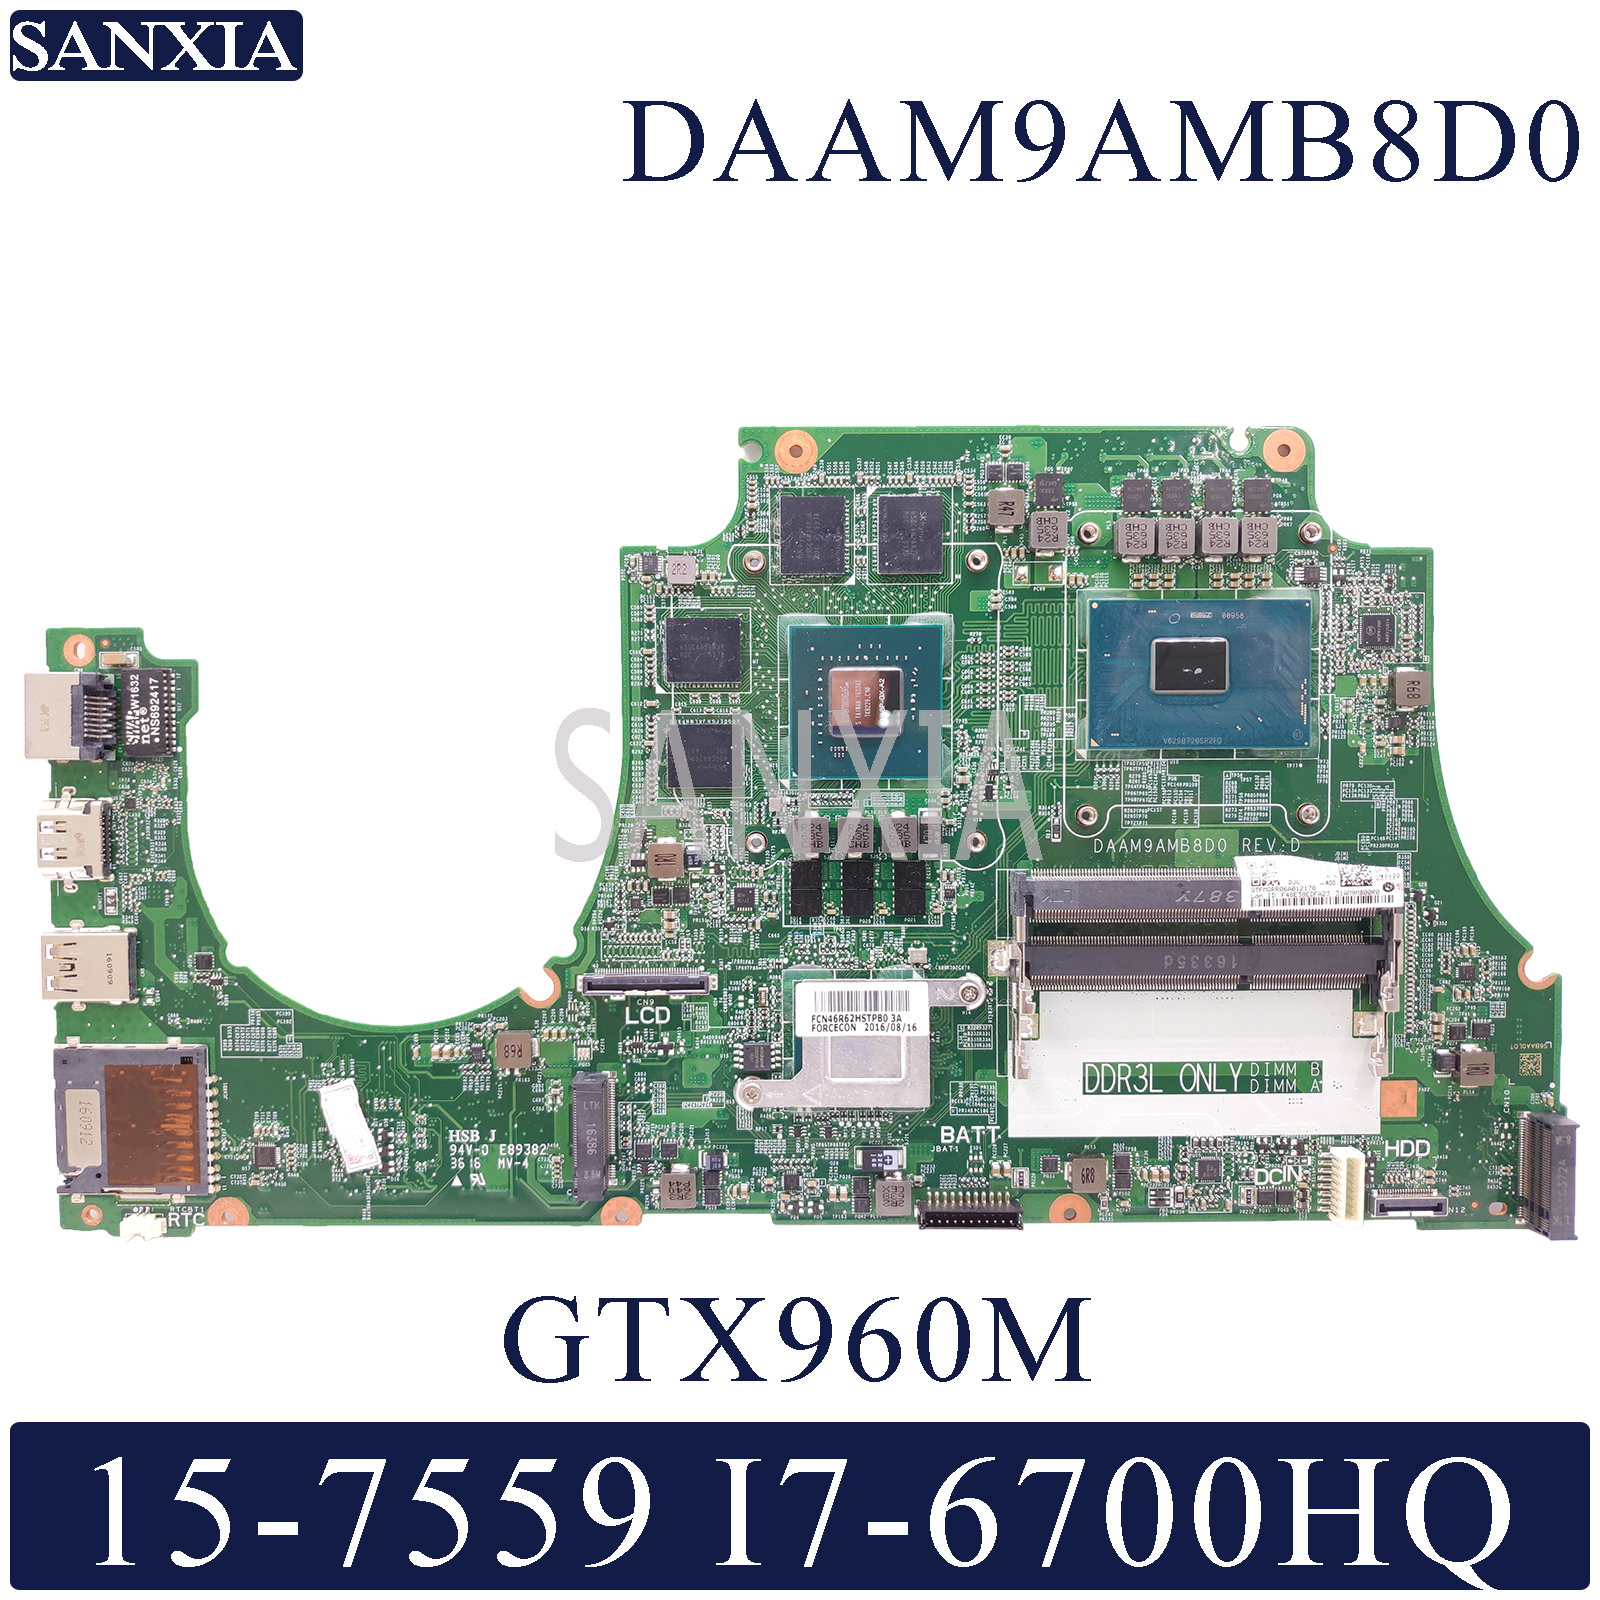 KEFU DAAM9AMB8D0 Laptop Motherboard For Dell Inspiron 15-7559 Original Mainboard I7-6700HQ GTX960M-4GB